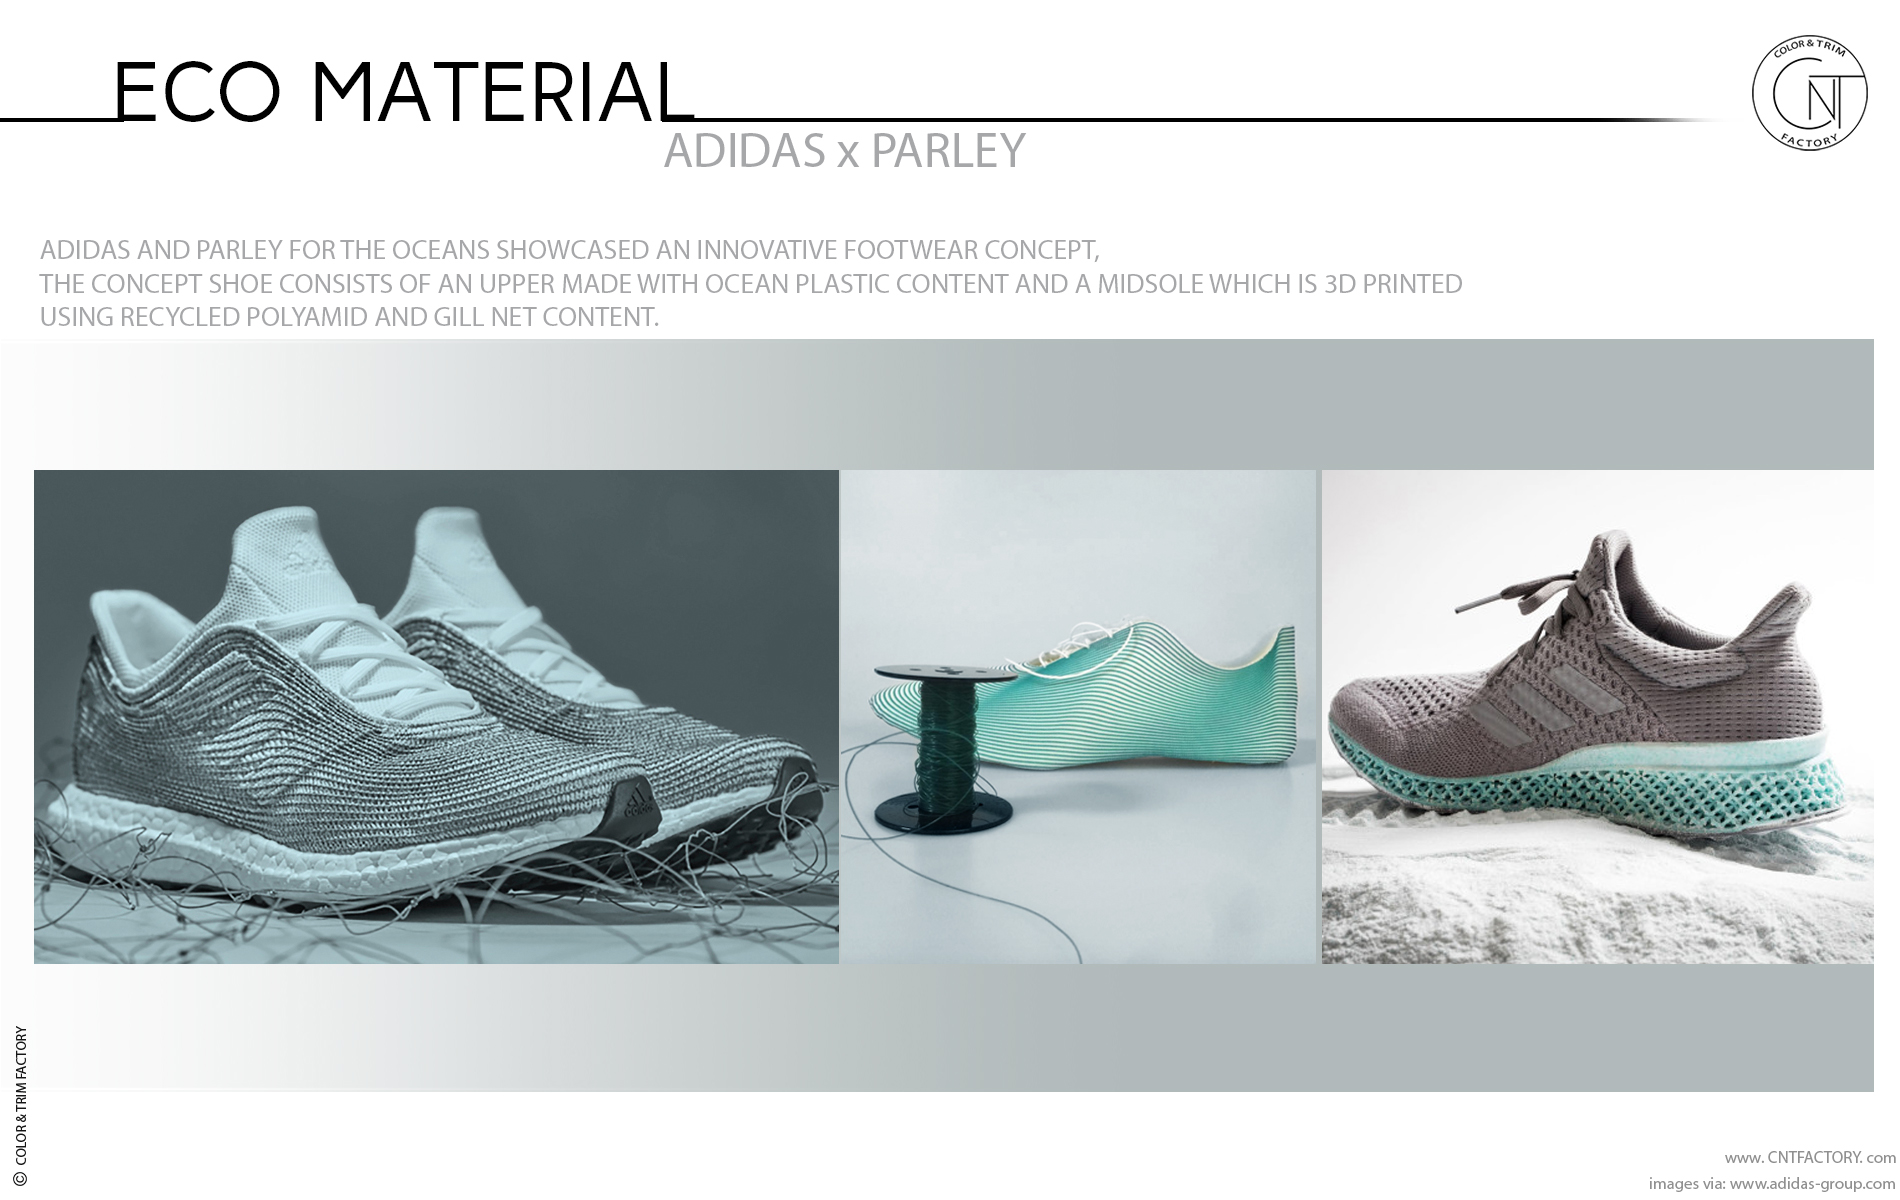 new concept 91063 3b74e Adidas and Parley for the Oceans made with Eco Textile